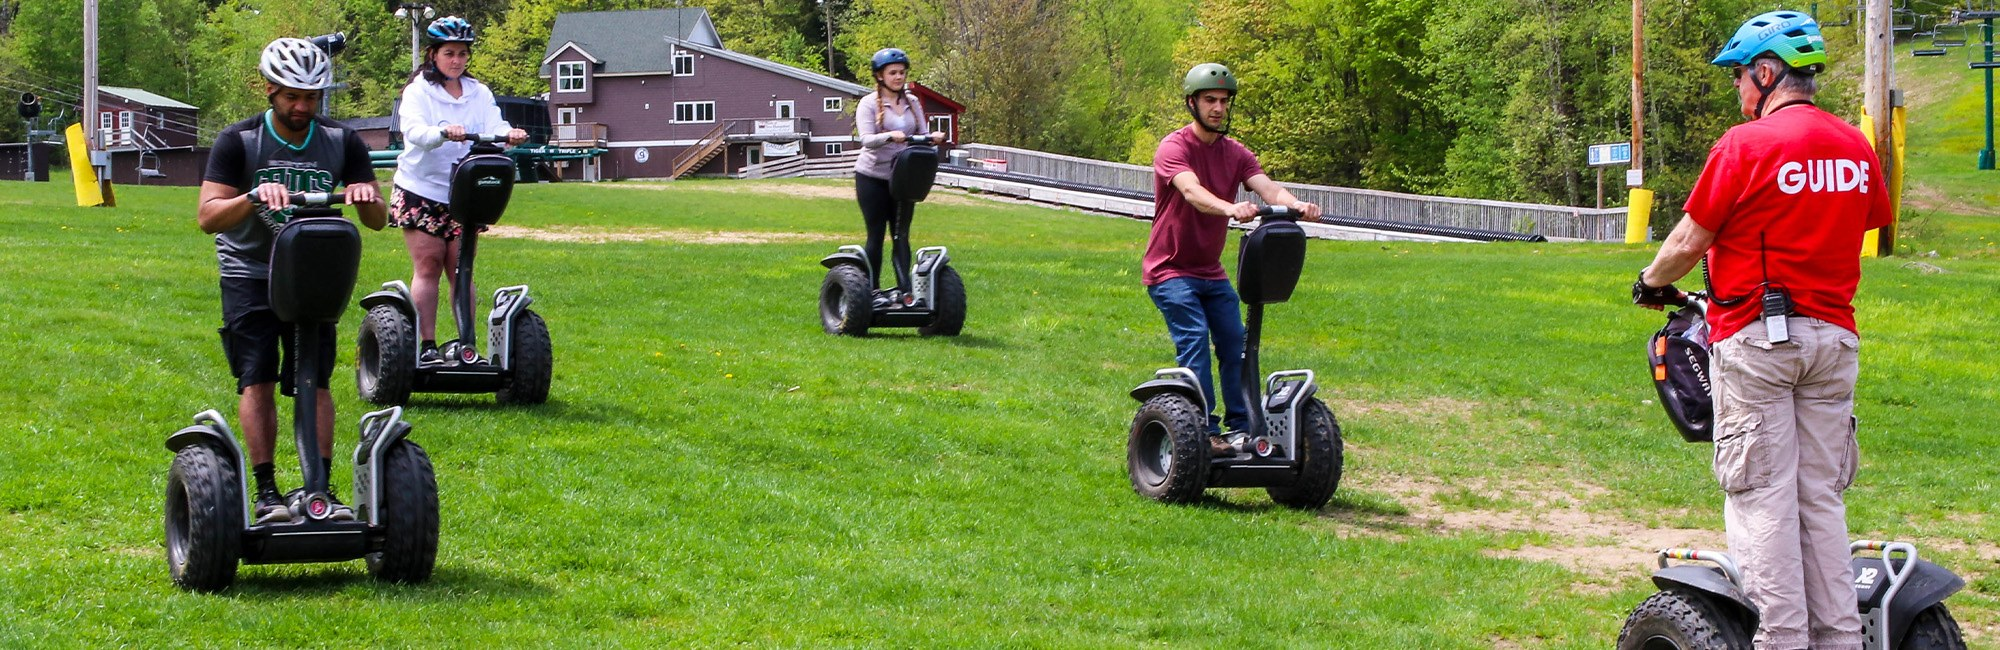 Segway drivers with gude